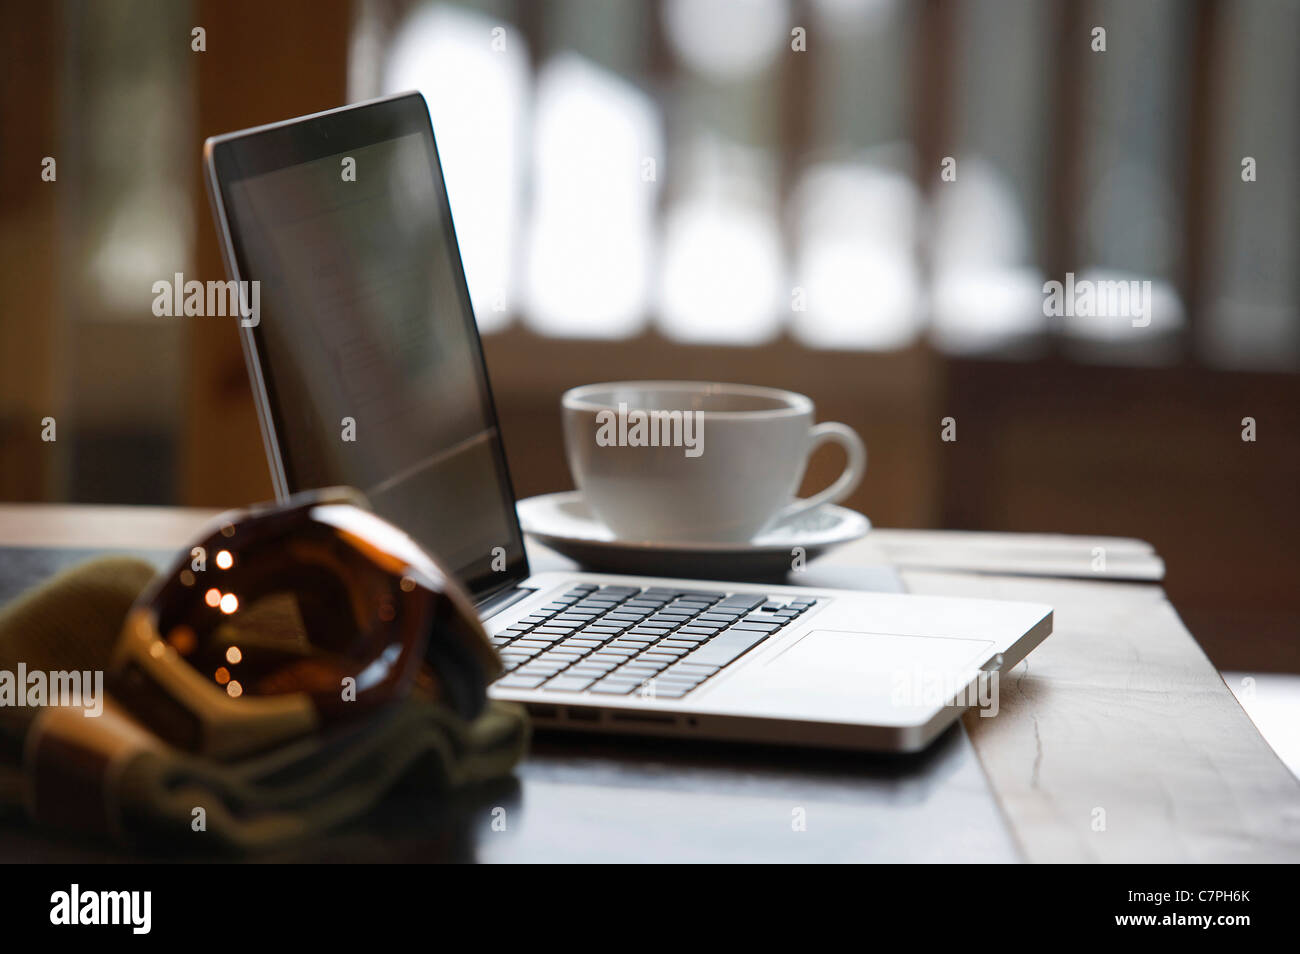 Ski goggles and laptop with coffee cup - Stock Image